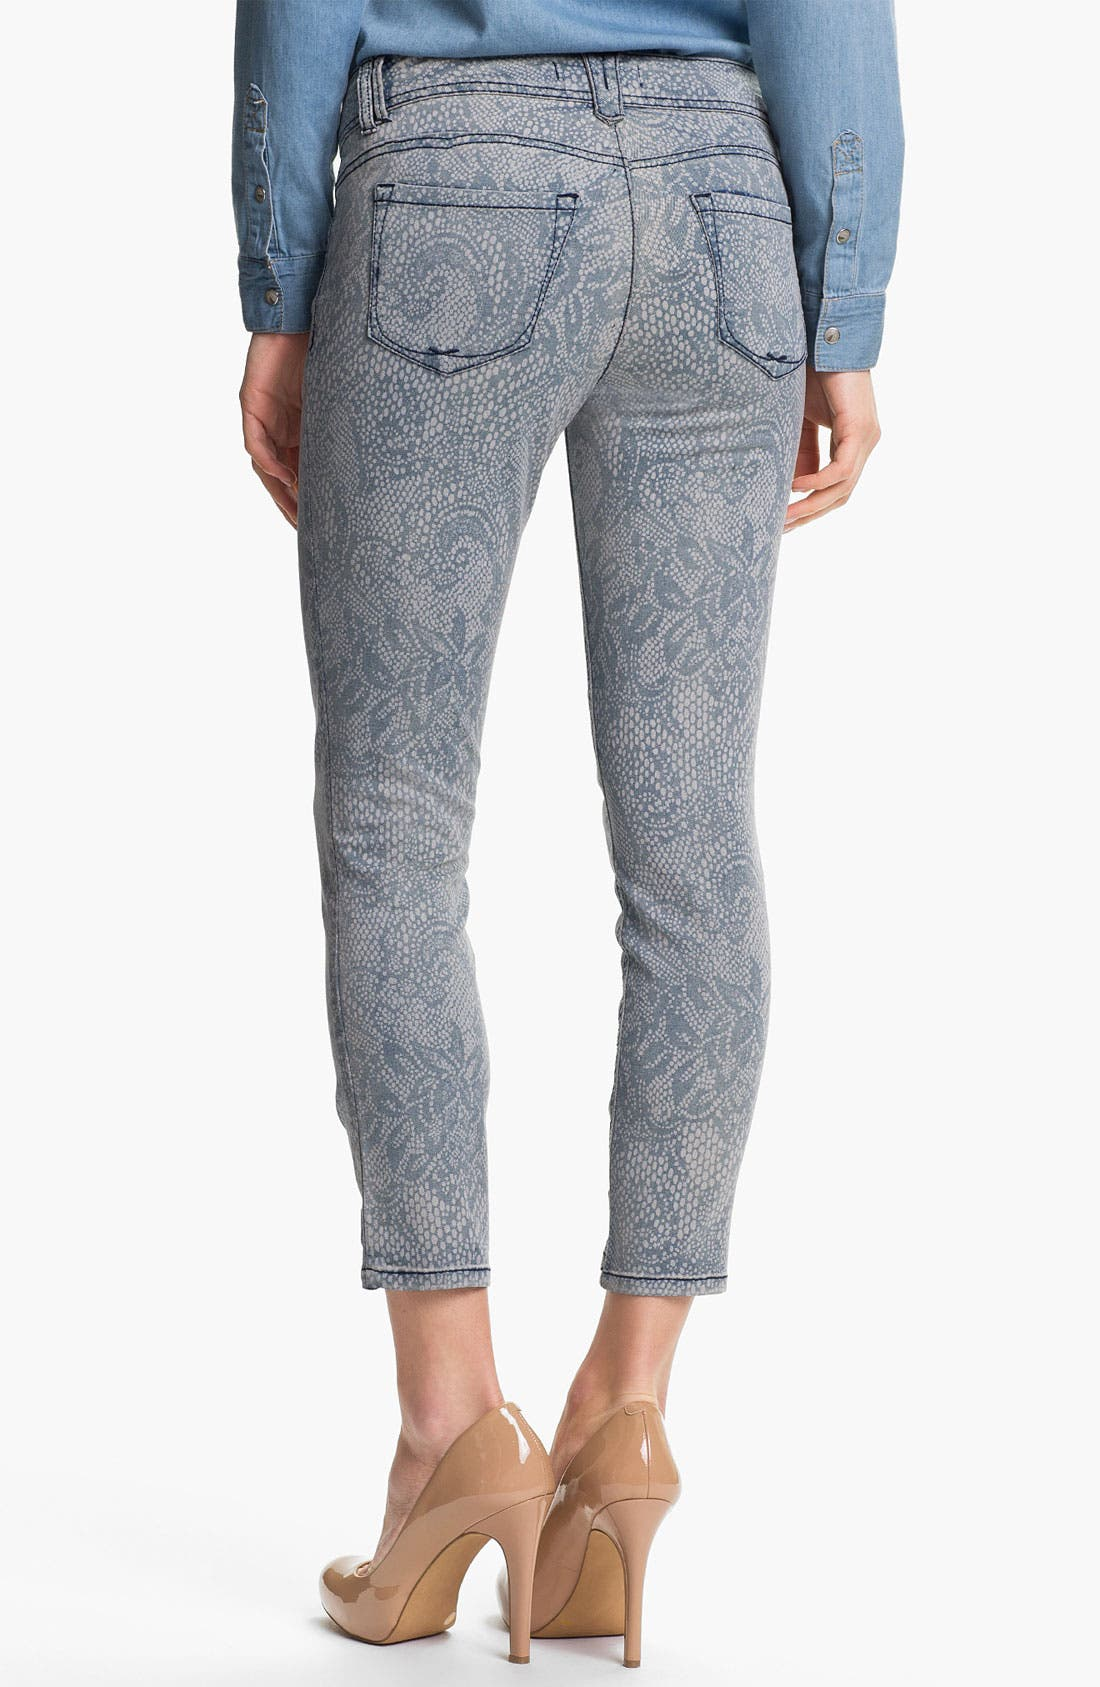 Alternate Image 2  - Wit & Wisdom Lace Print Crop Jeans (Indigo) (Nordstrom Exclusive)